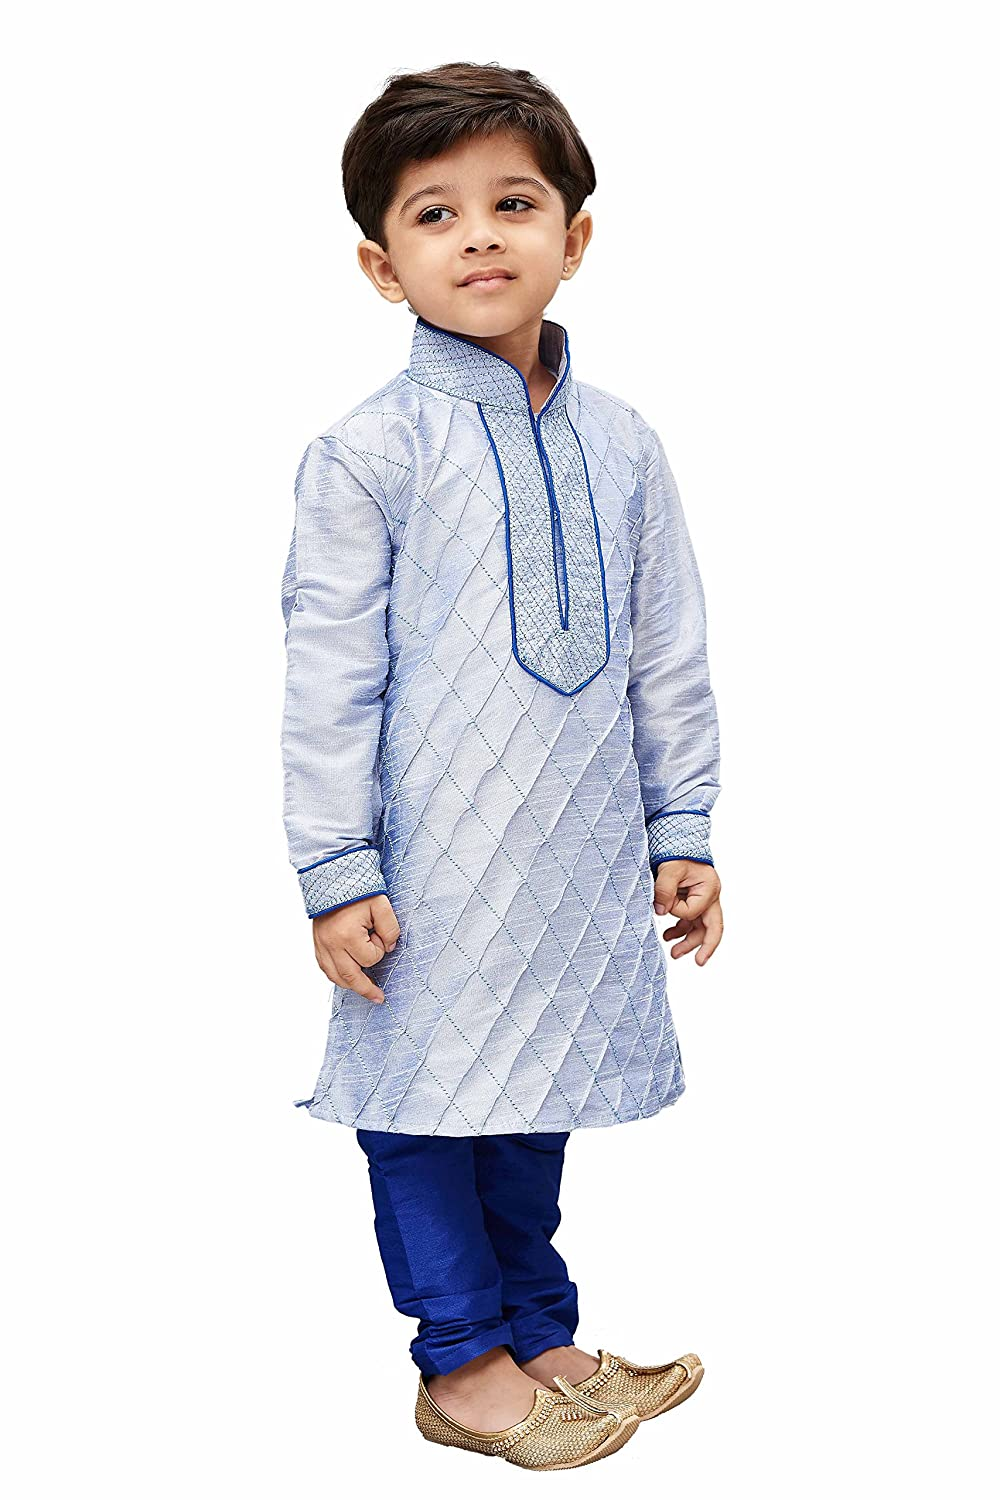 f5c1dbe0b JBN Creation Boys Cotton Silk Kurta and Pyjama Set (Light  Blue_VASBKHA004nPBU): Amazon.in: Clothing & Accessories